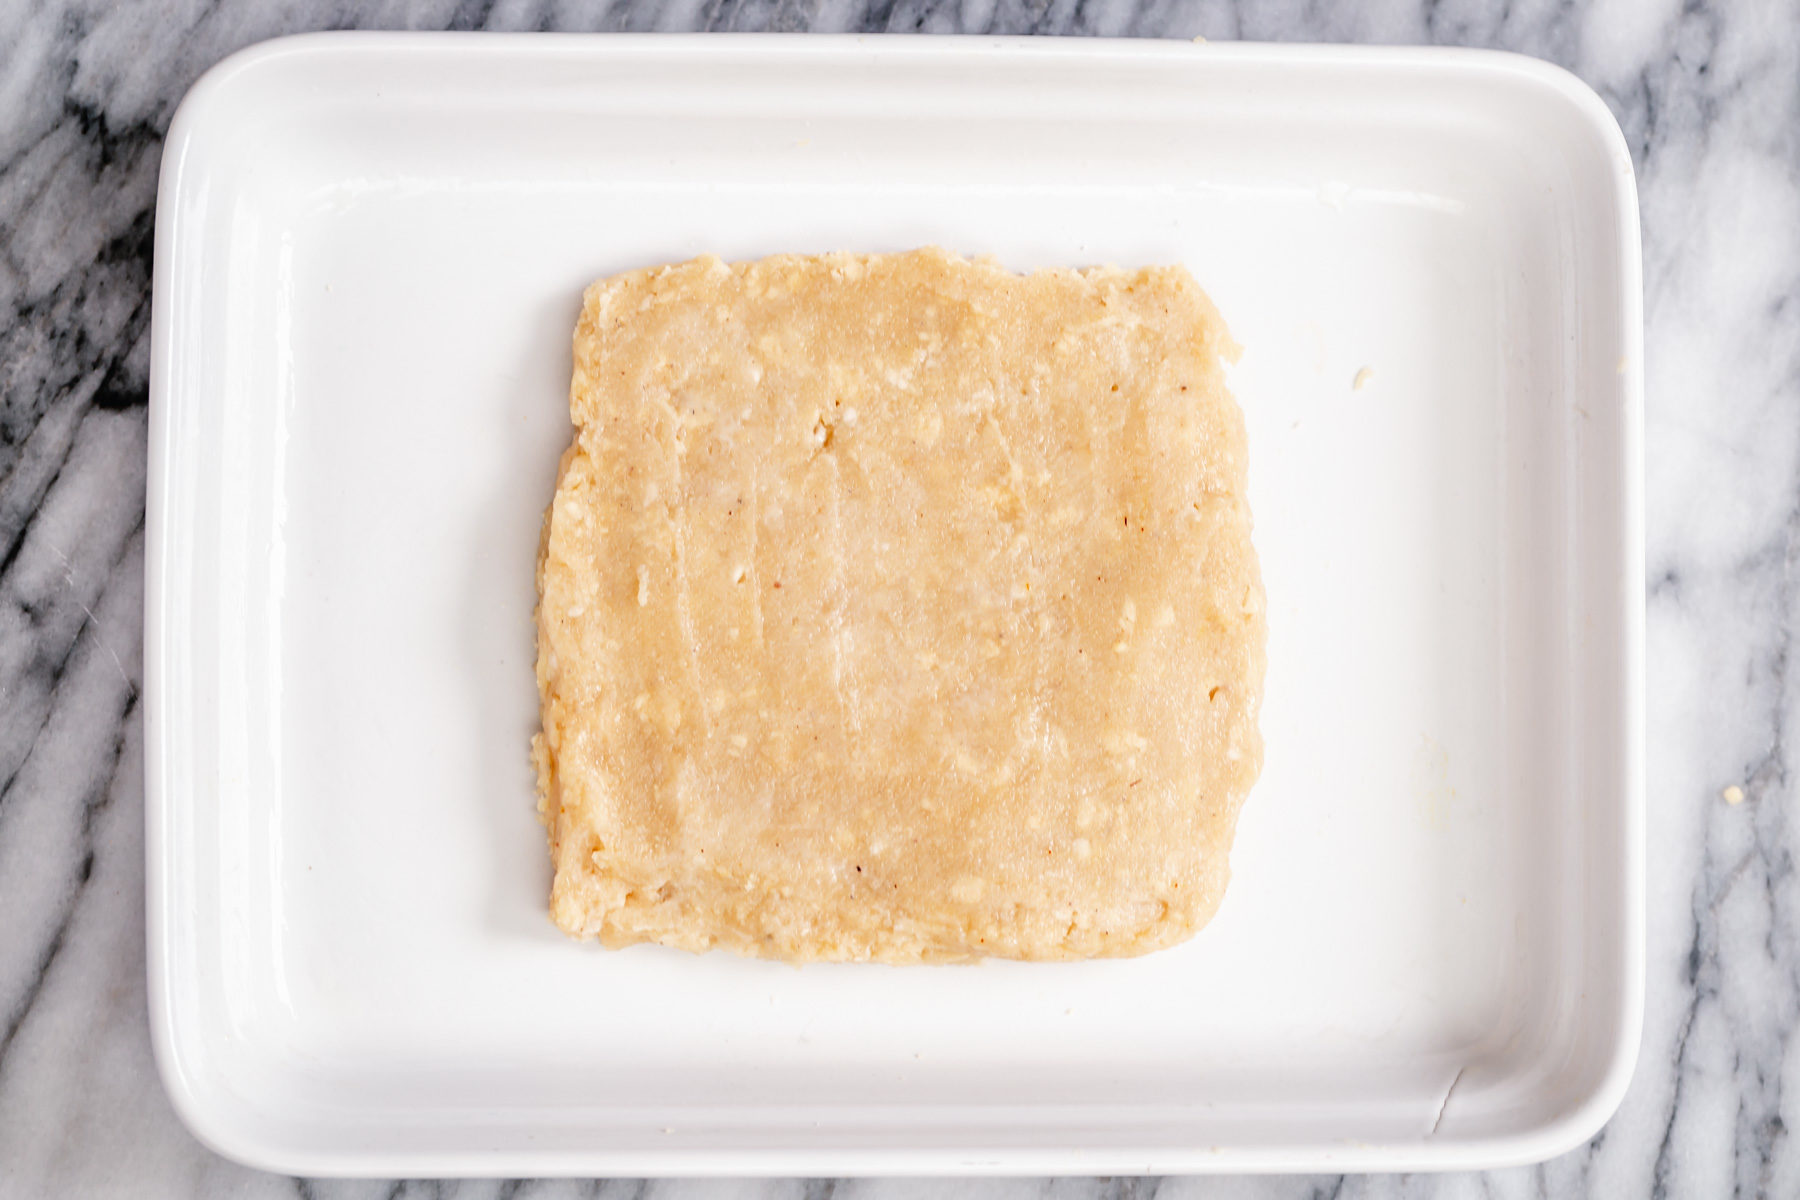 rasmalai cake batter being shaped to a square in a pan